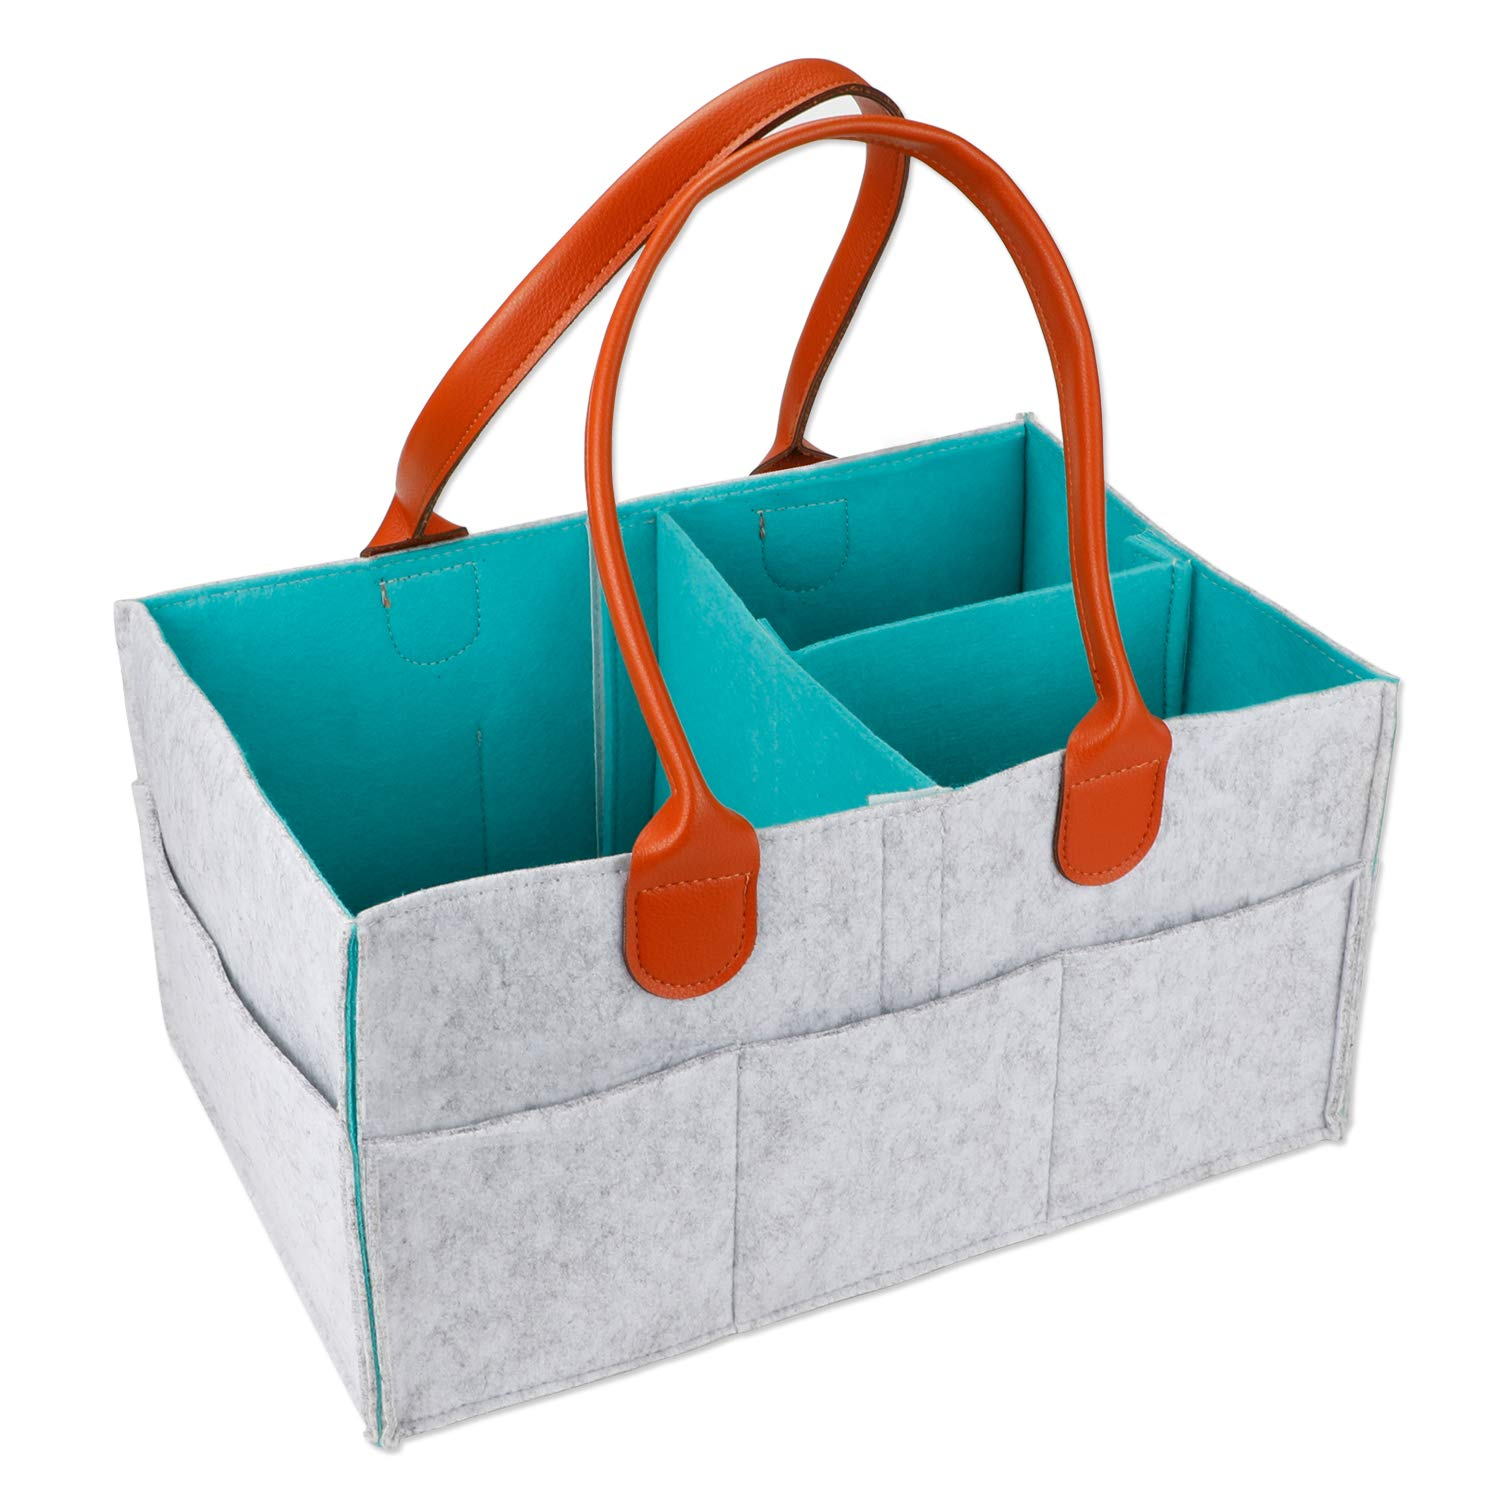 Baby Diaper Caddy | Nursery Diaper Tote Bag | Large Portable Car Travel Organizer | Boy Girl Diaper Storage Bin for Changing Table | Baby Shower Gift Basket (Large) MojiDecor